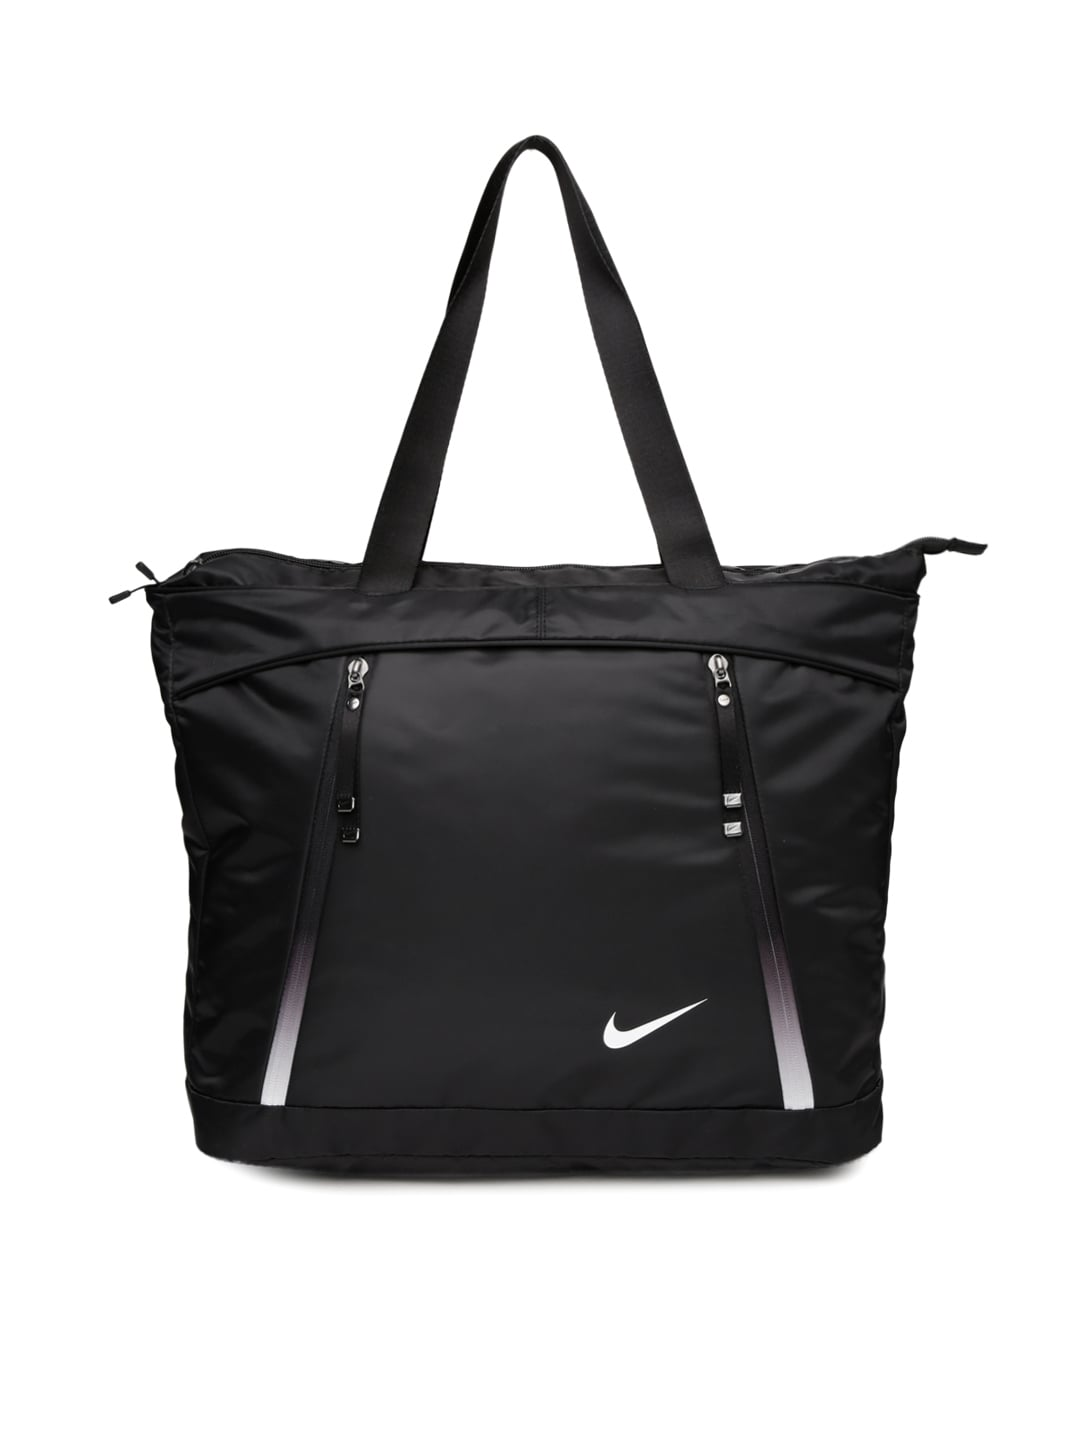 Nike Womens - Buy Nike Womens online in India b6cefb88a6f67